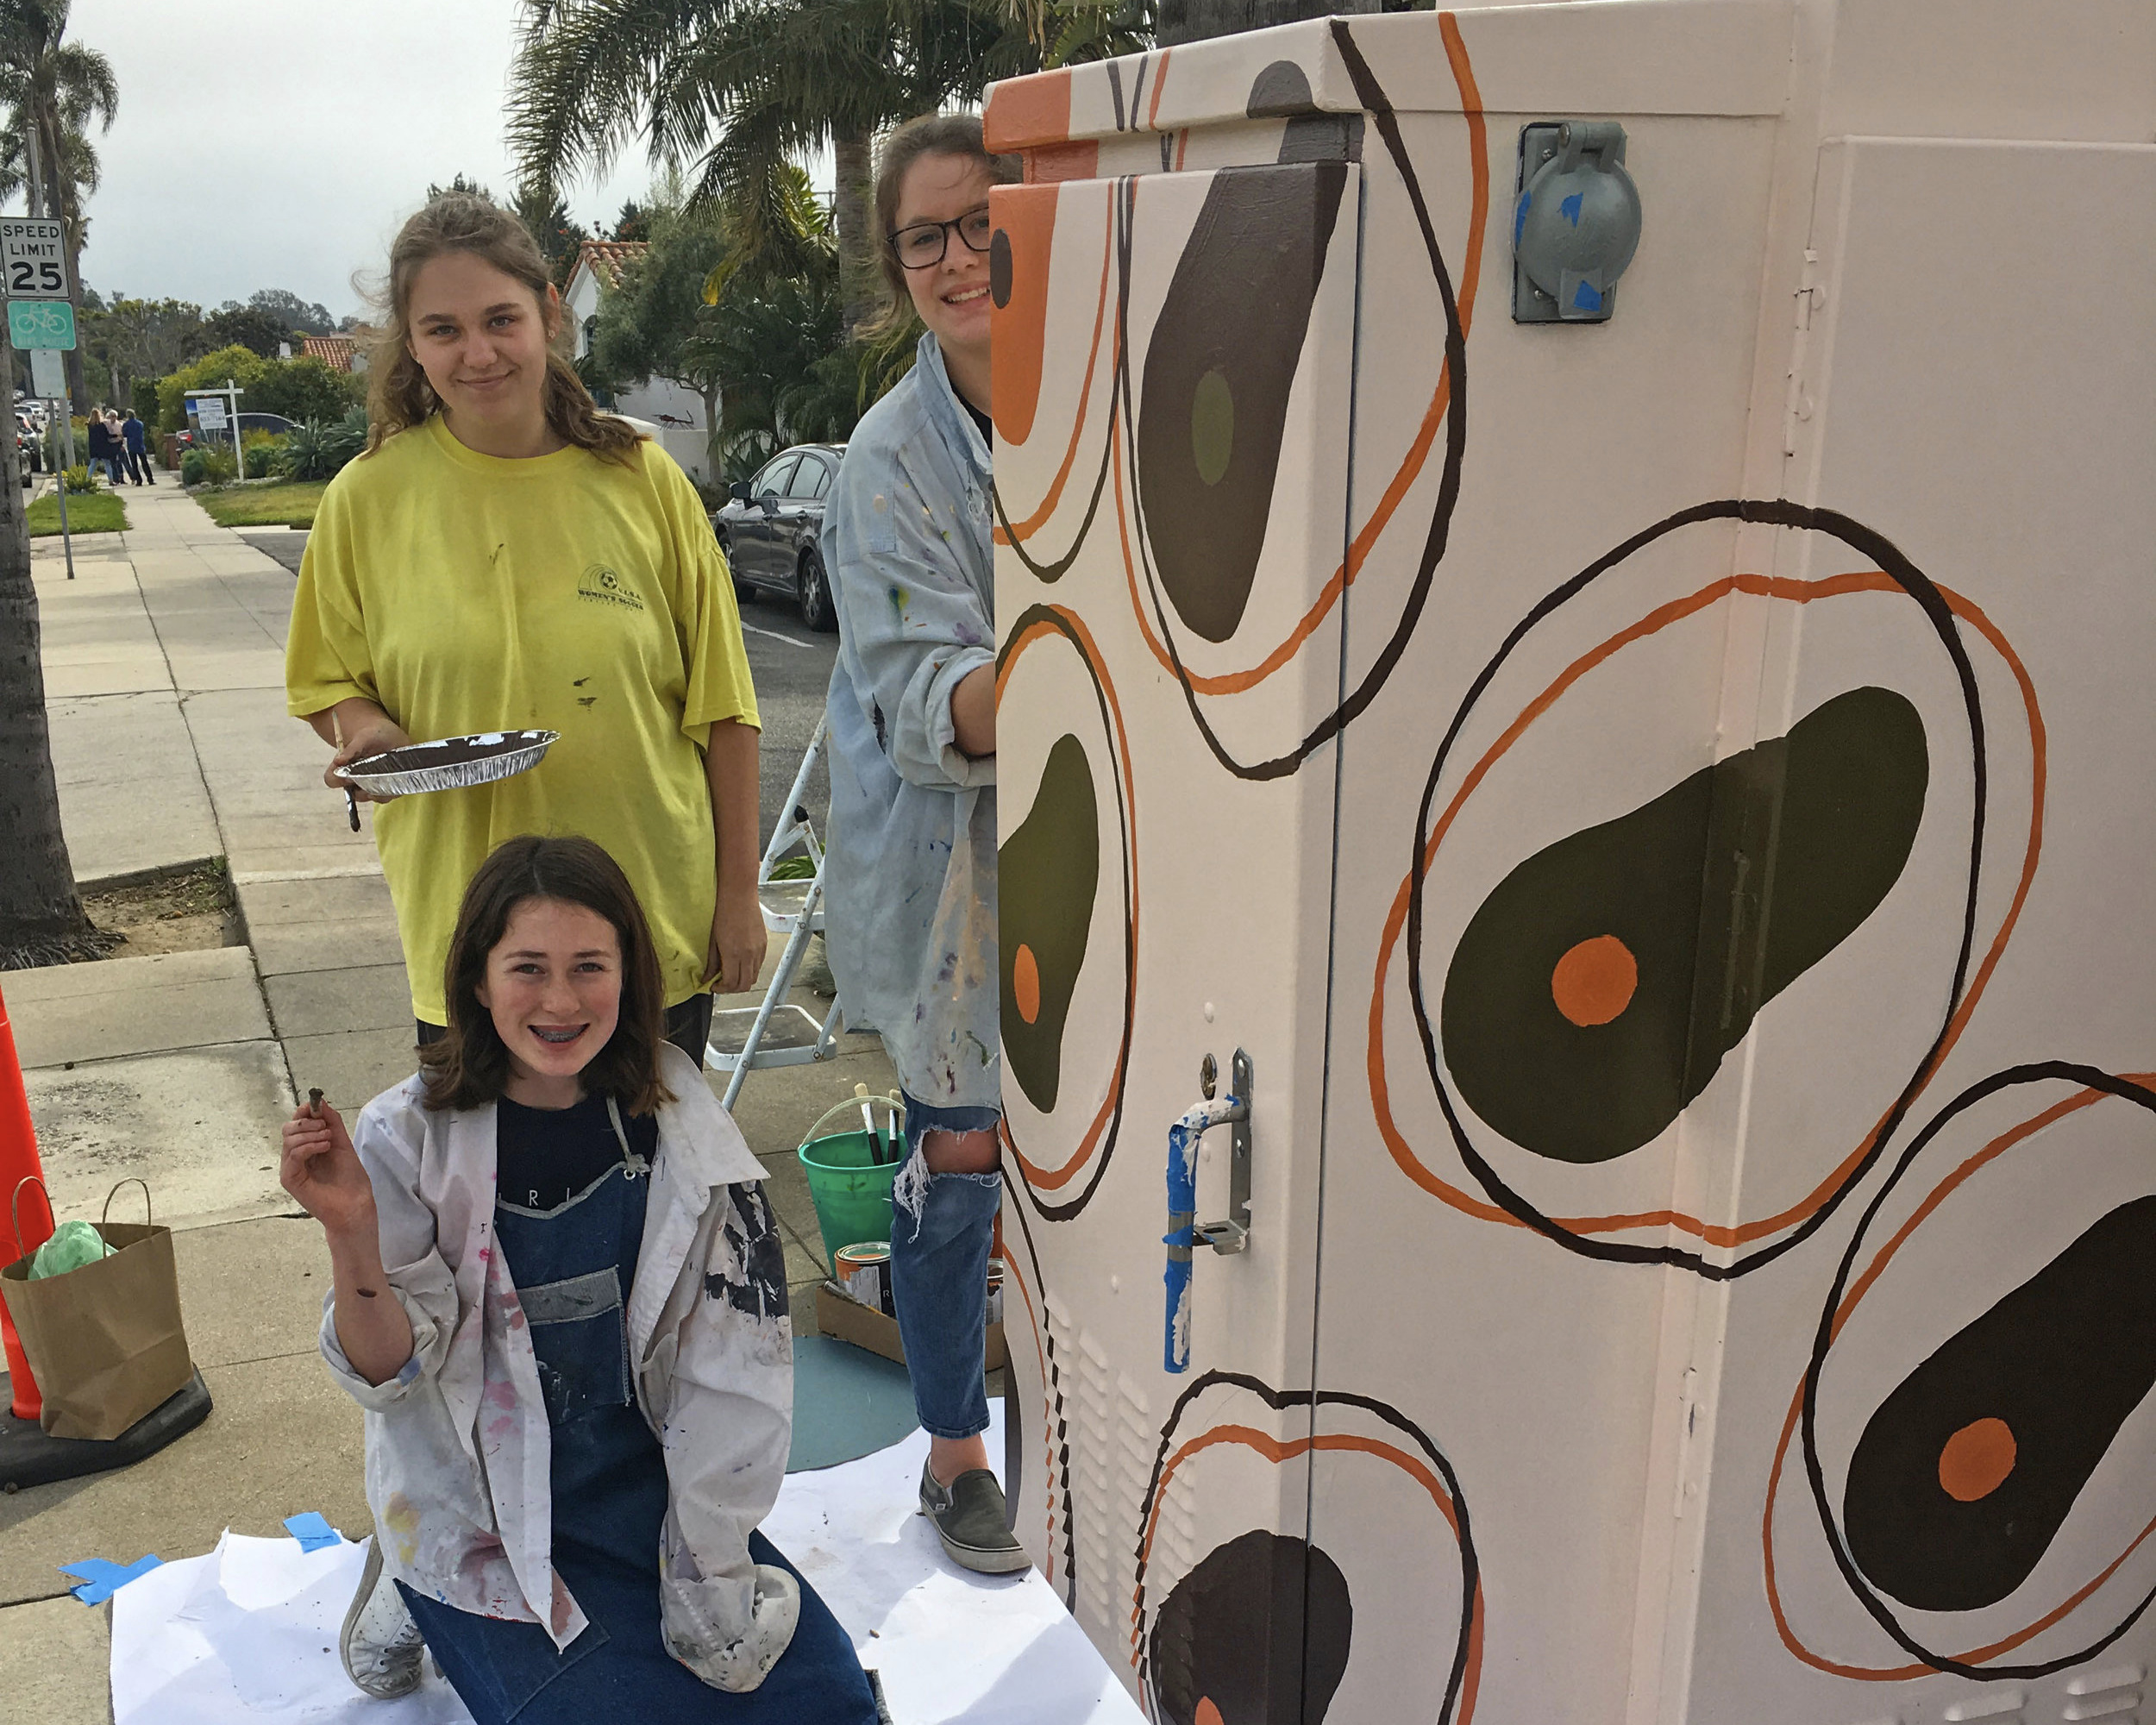 City of Ventura Public Art Adopt-a-Box